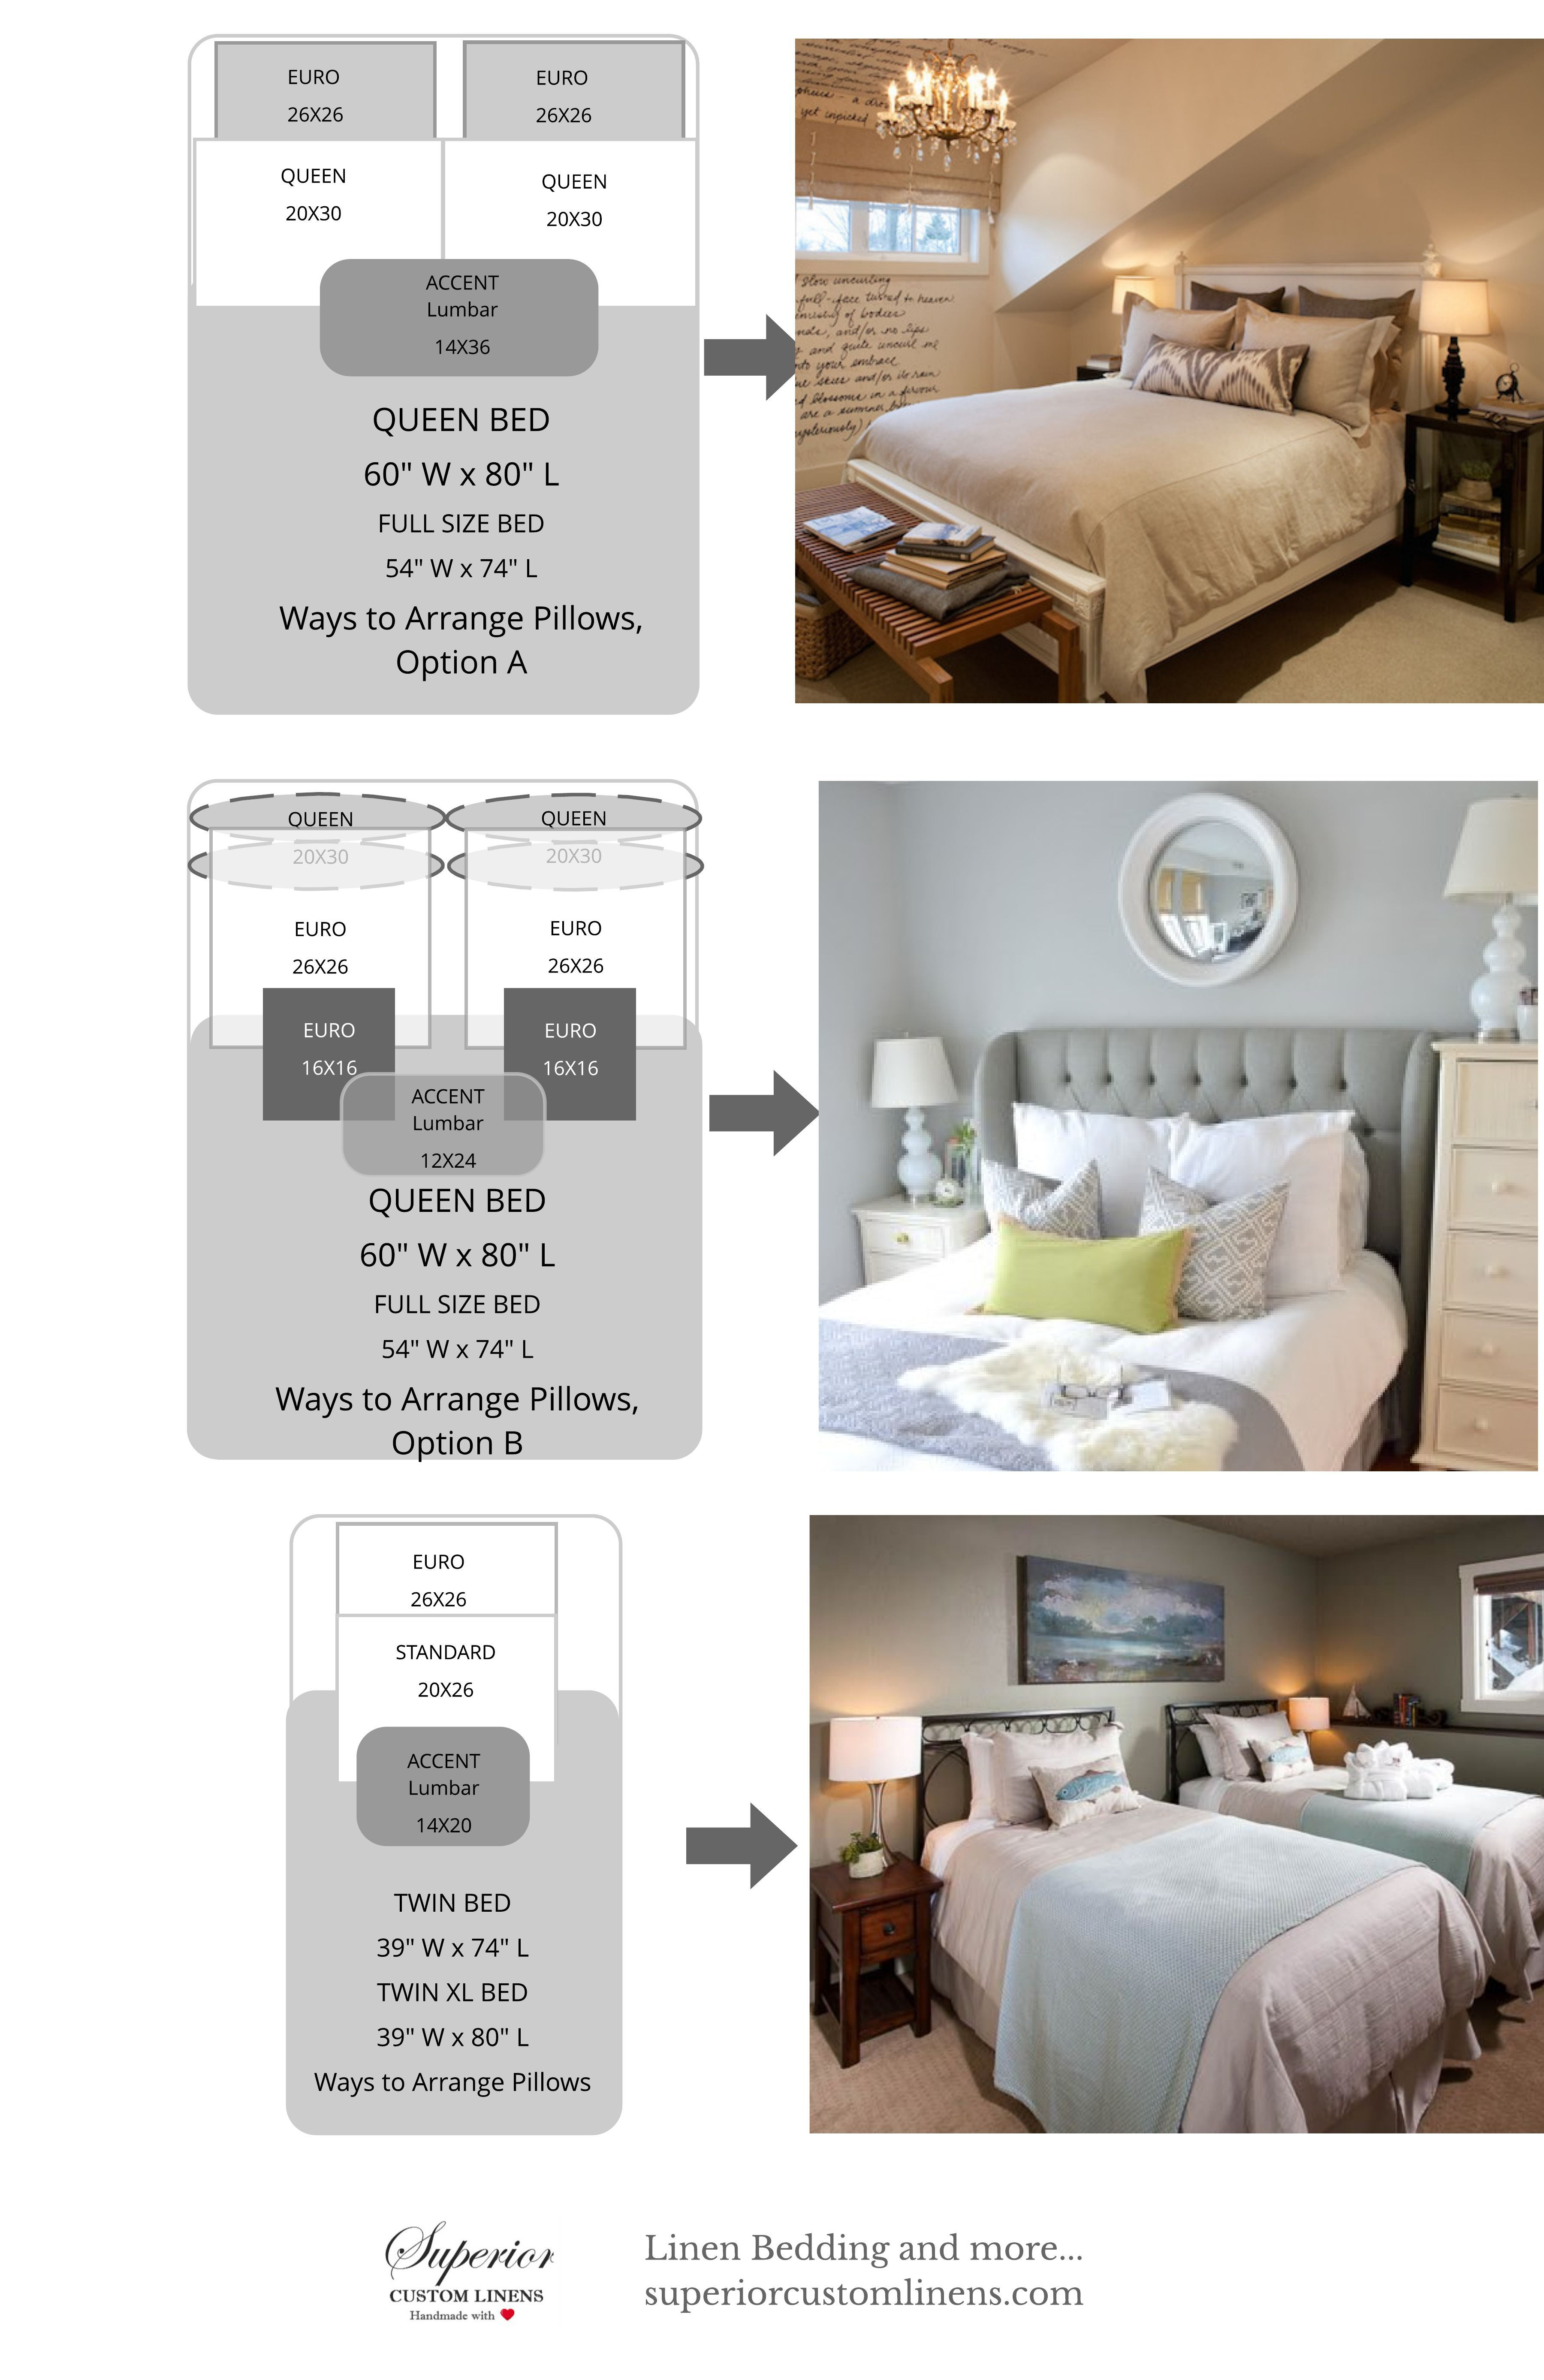 How To Arrange Pillows On Queen Size Bed Schlafzimmer Design